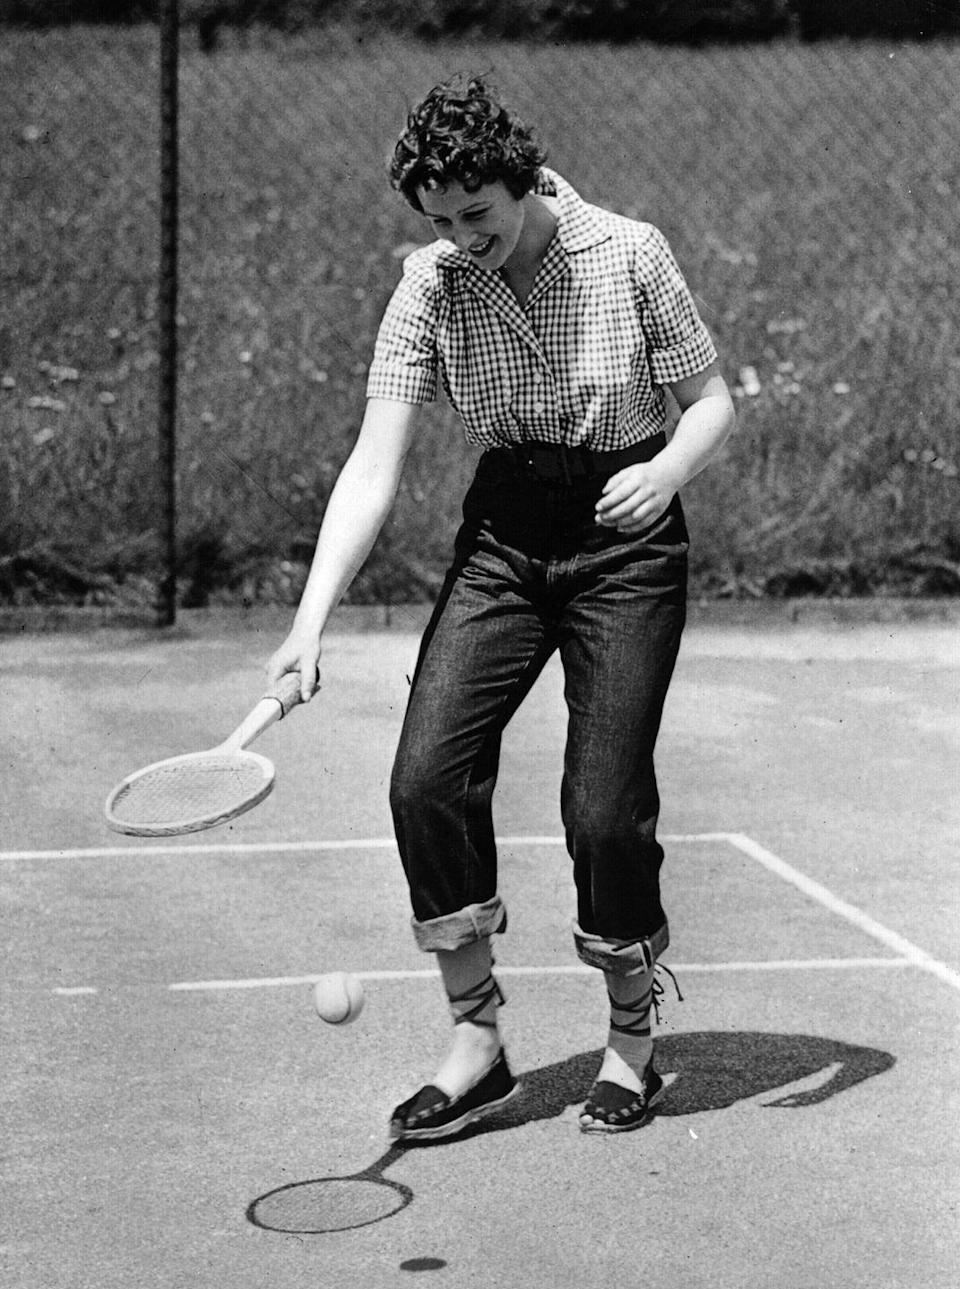 <p> Princess Diana is often credited as being the first Princess to publicly wear jeans, but that's not true: Here Princess Alexandra of Kent wears jeans to play tennis at her family home in Buckinghamshire. Jeans as activewear: how far we've come. </p>